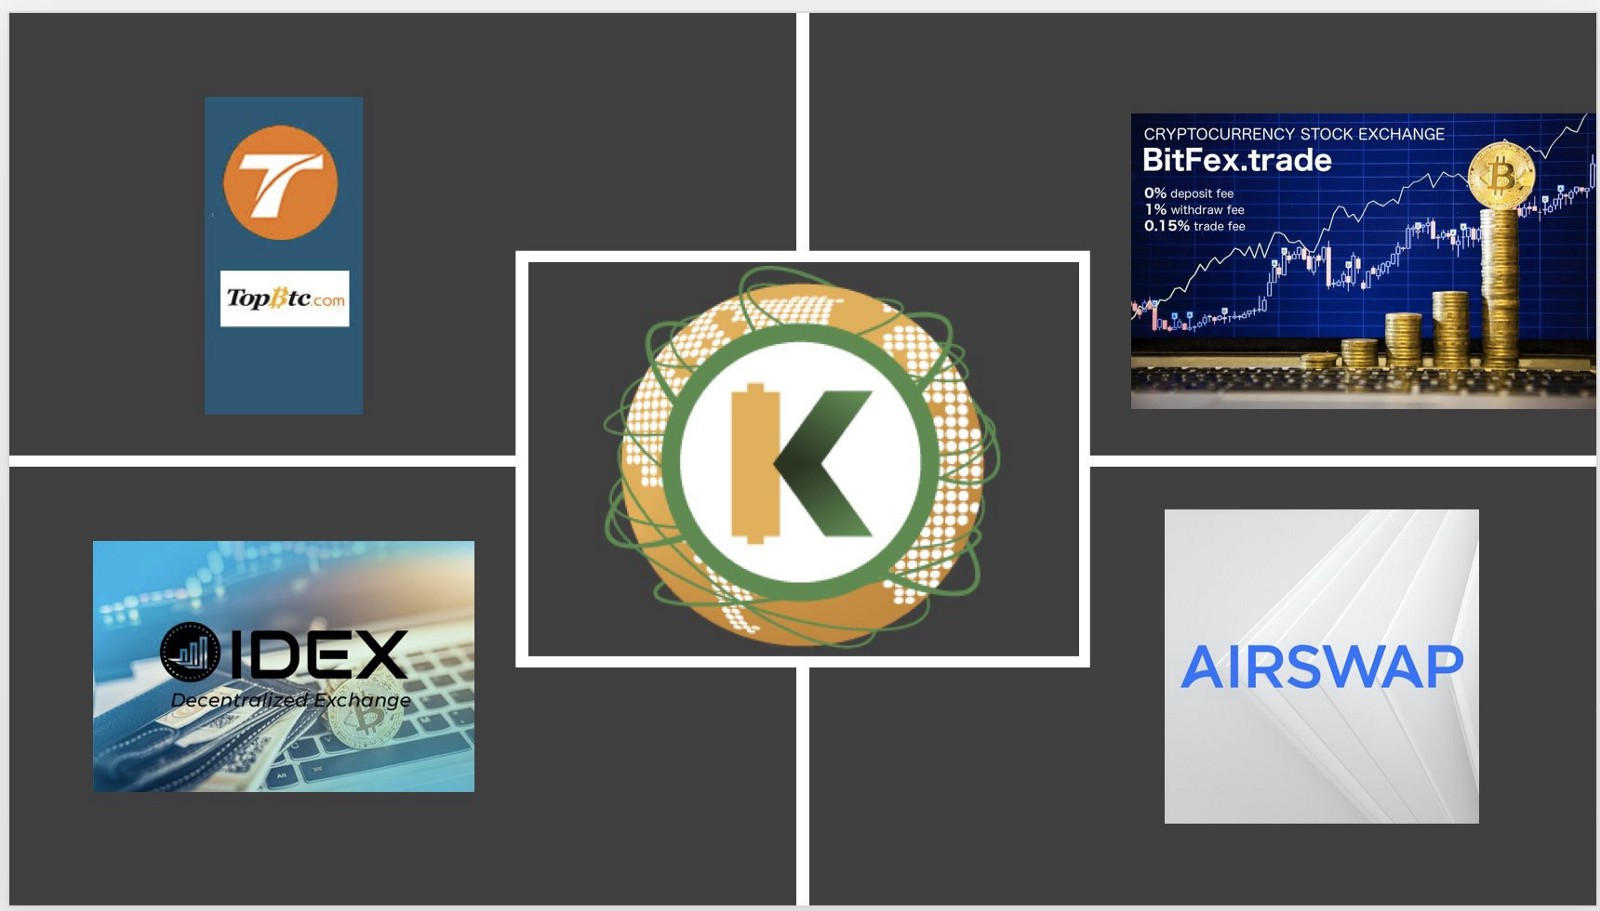 KWHCoin Trading Resumed On All Exchanges TopBTC IDEXBitfex